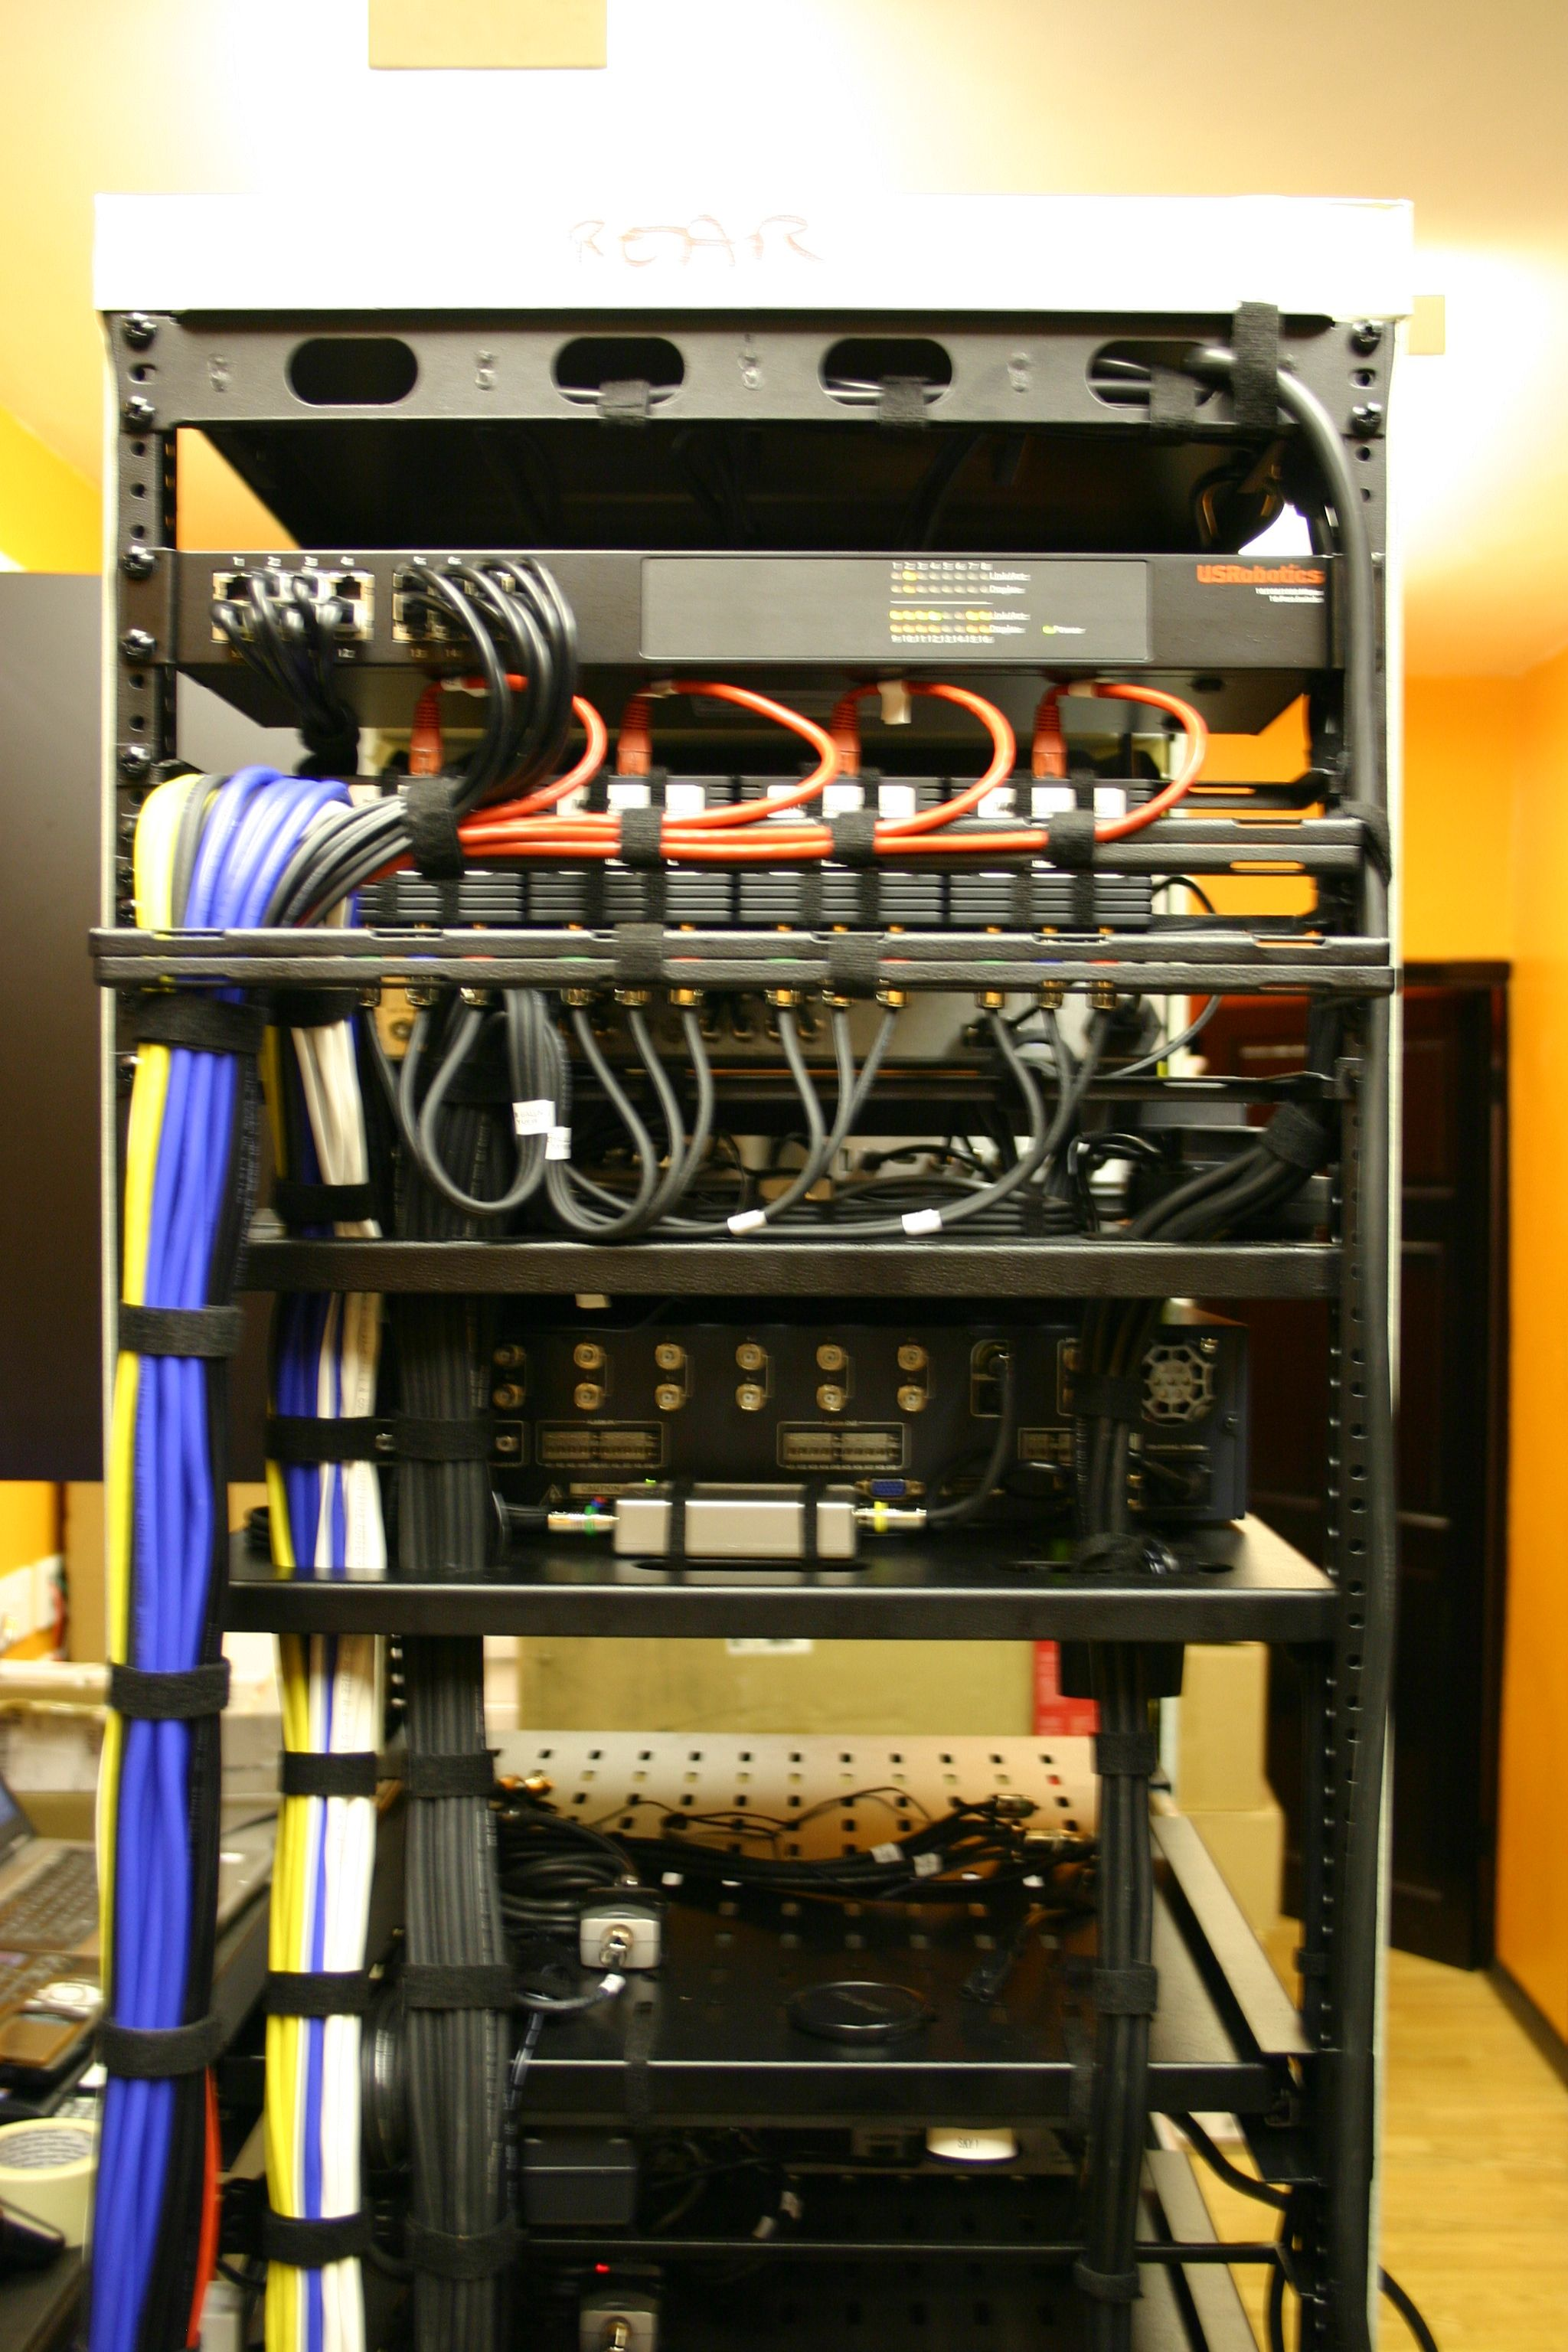 av racks showcase hot racks in 2019 cable management cable structured wiring cabinet for network and a v [ 2048 x 3072 Pixel ]